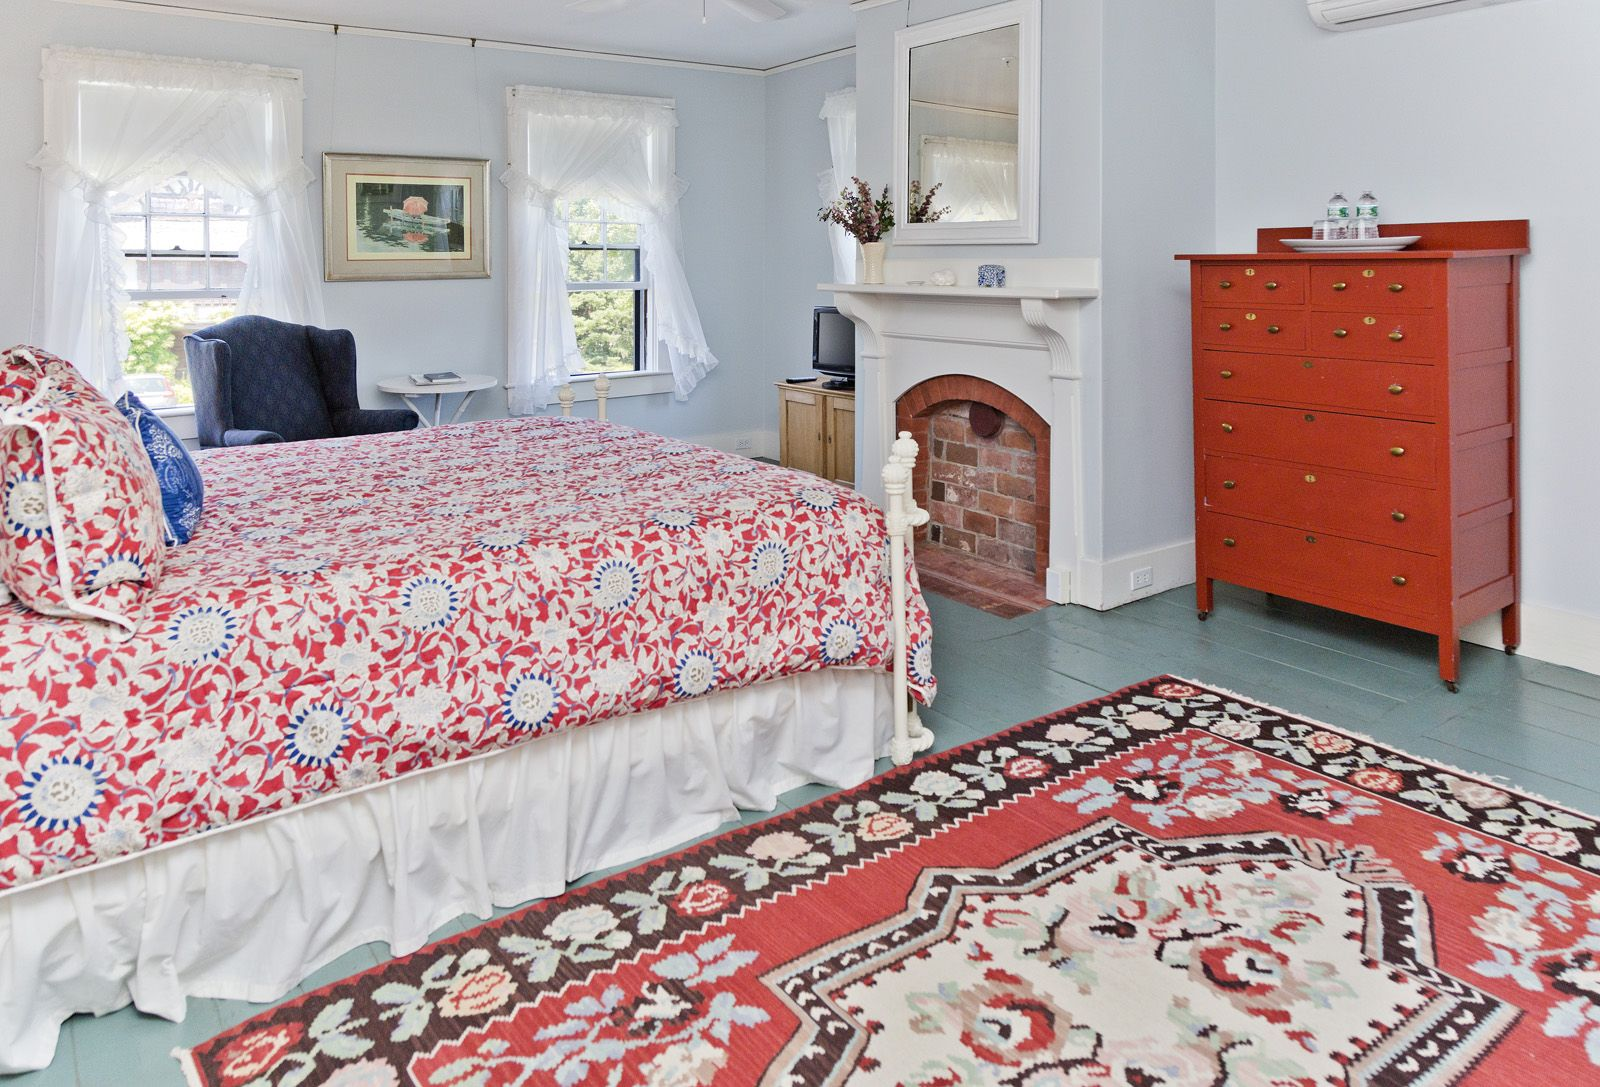 Bar Harbor Info YELLOW HOUSE BED & BREAKFAST House